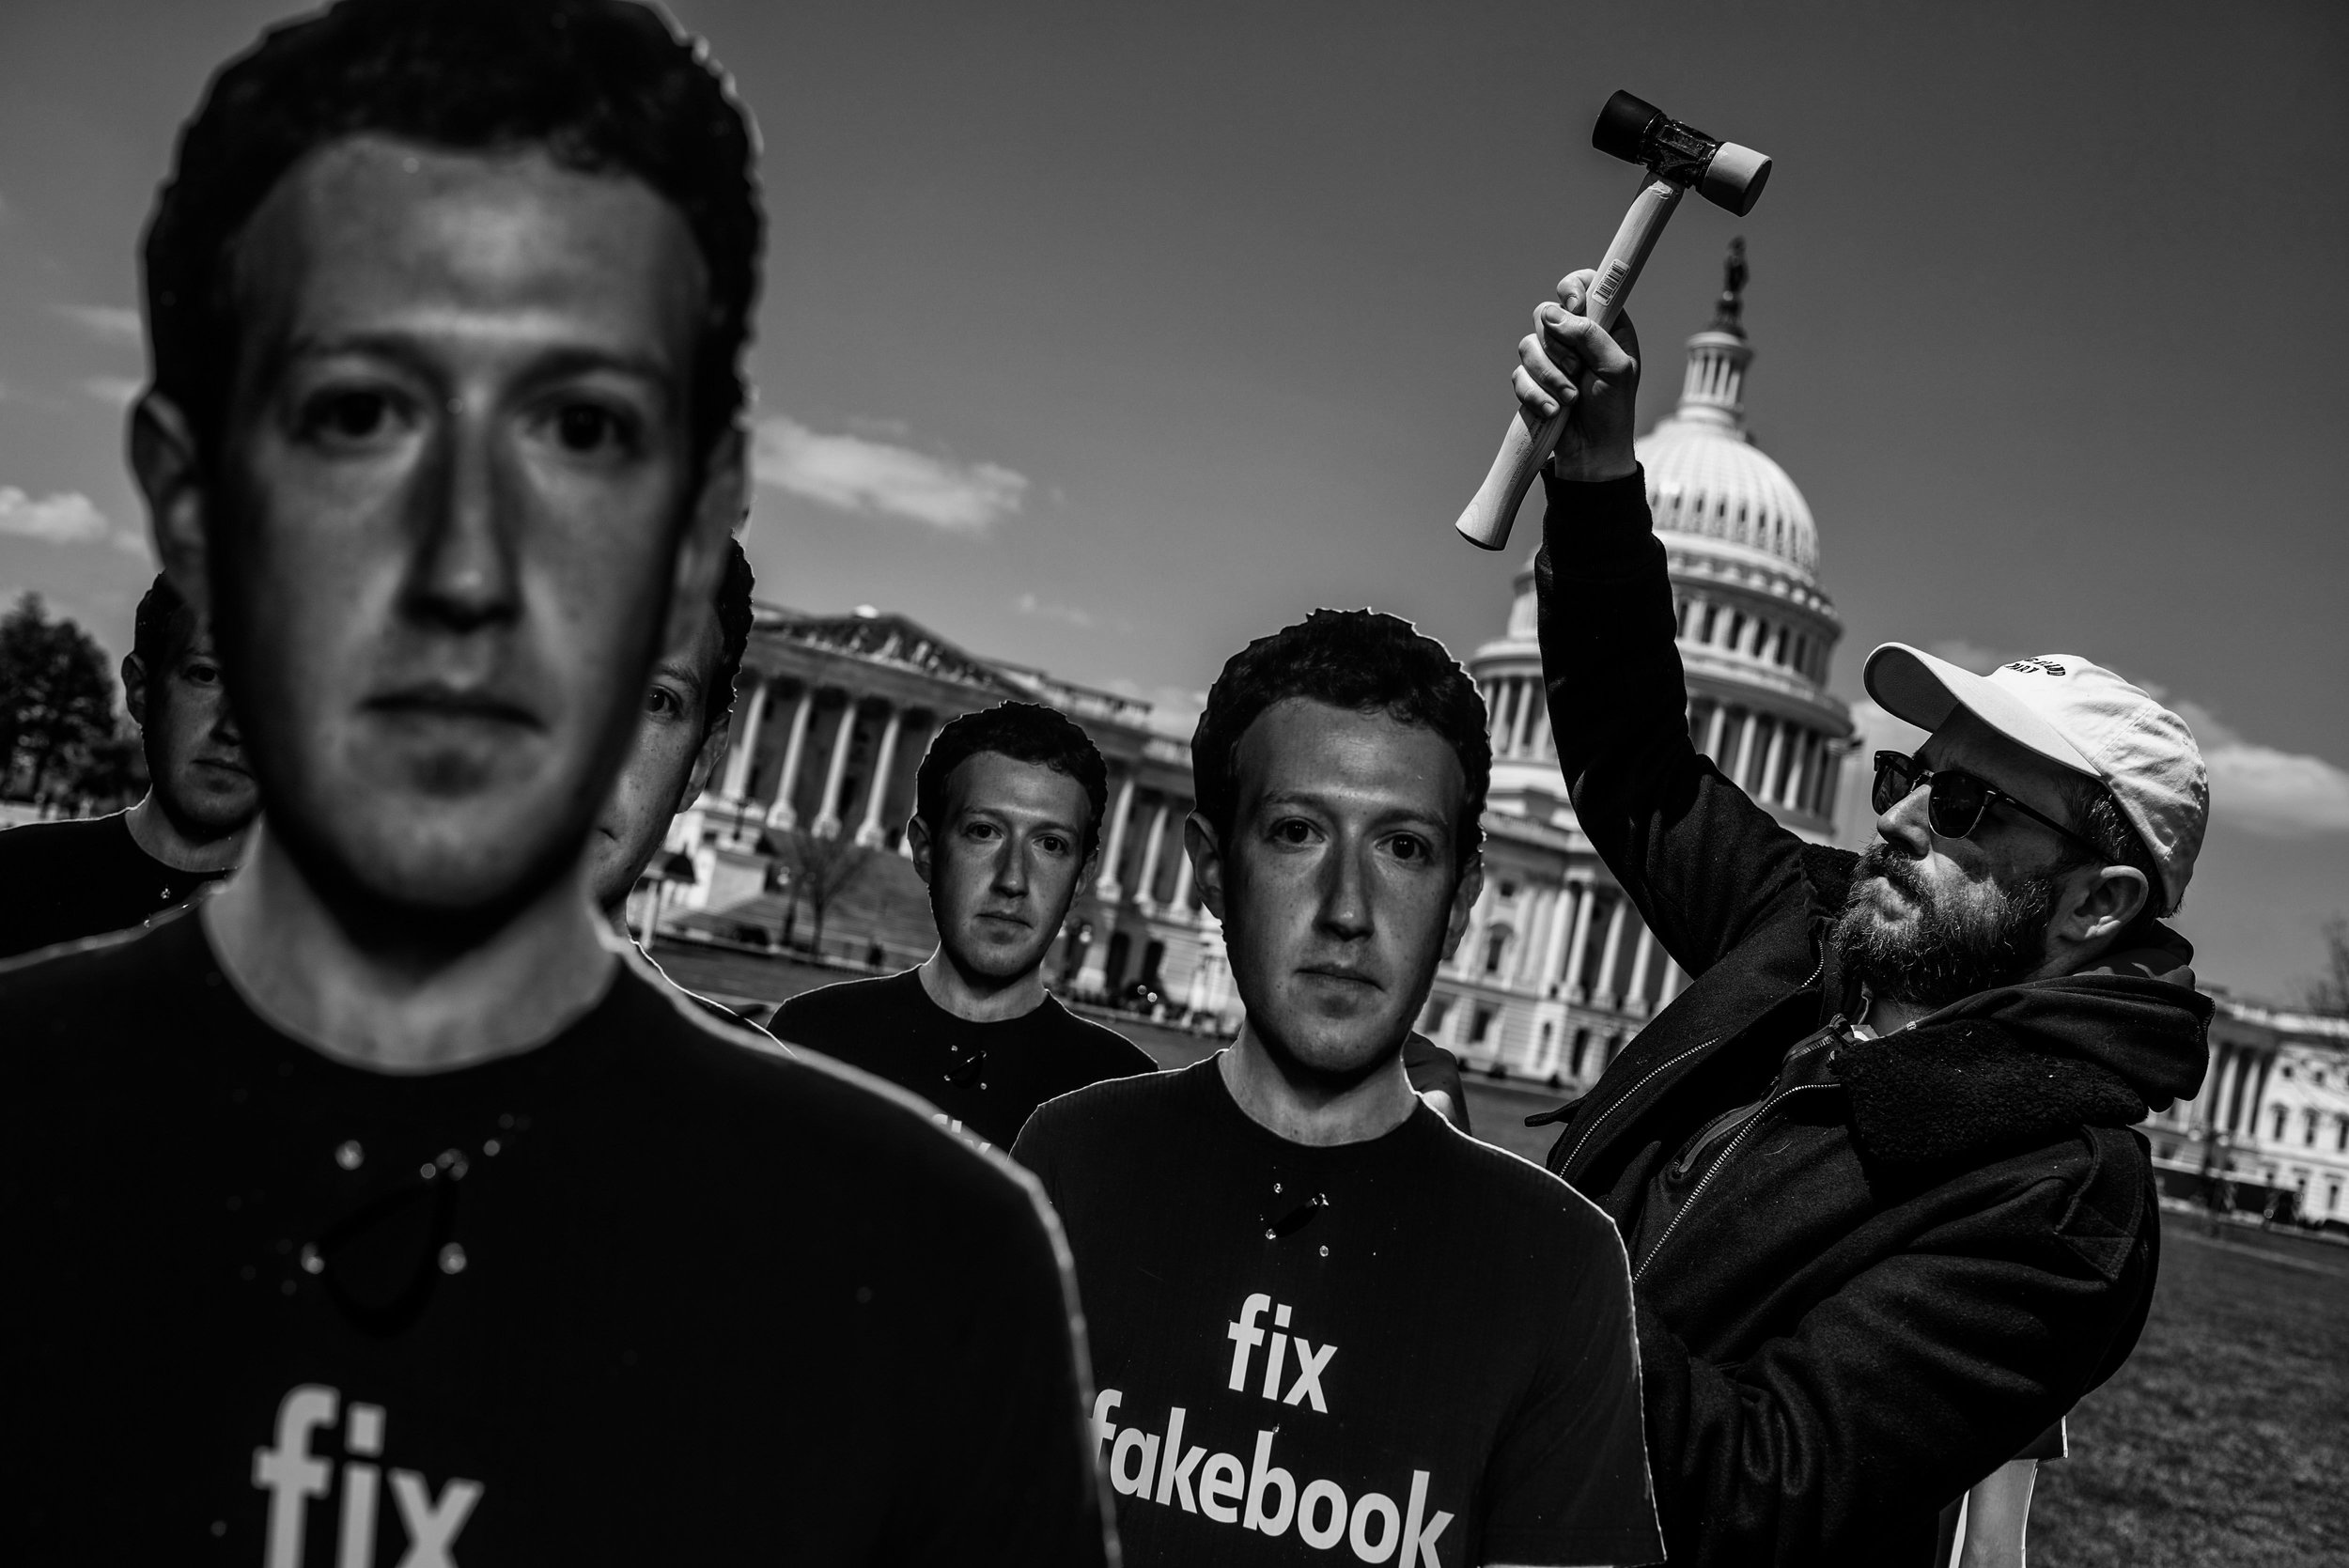 Day 446: Will Davies, a campaigner for Avaaz secures a cardboard cut-out of Facebook CEO Mark Zuckerberg on the south east lawn of the US Capitol, in Washington, DC on Tuesday, April 10, 2018.